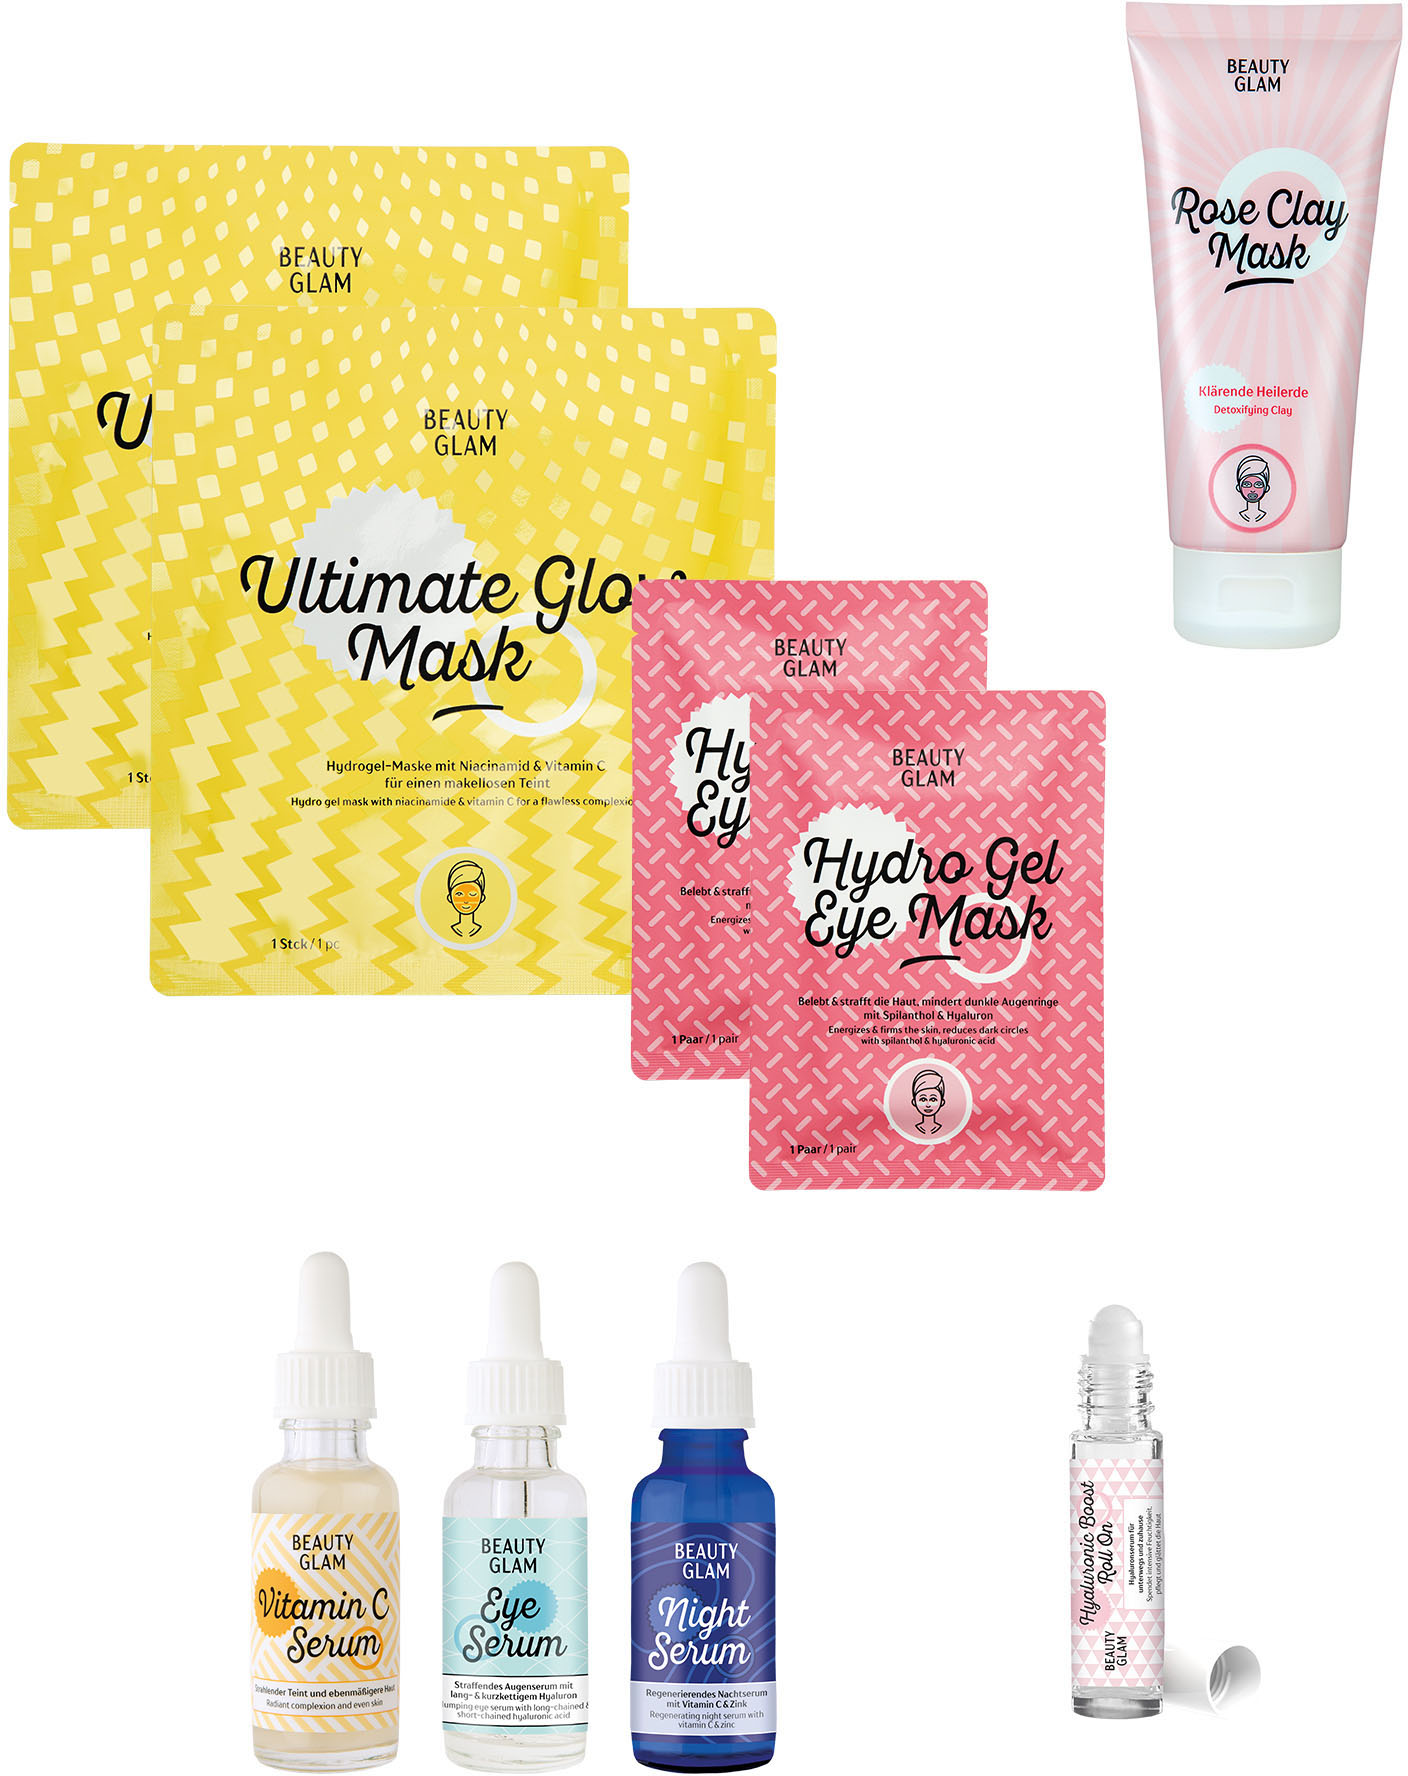 beauty glam -  Gesichtspflege-Set Your Daily Glow Up, (9 tlg.)